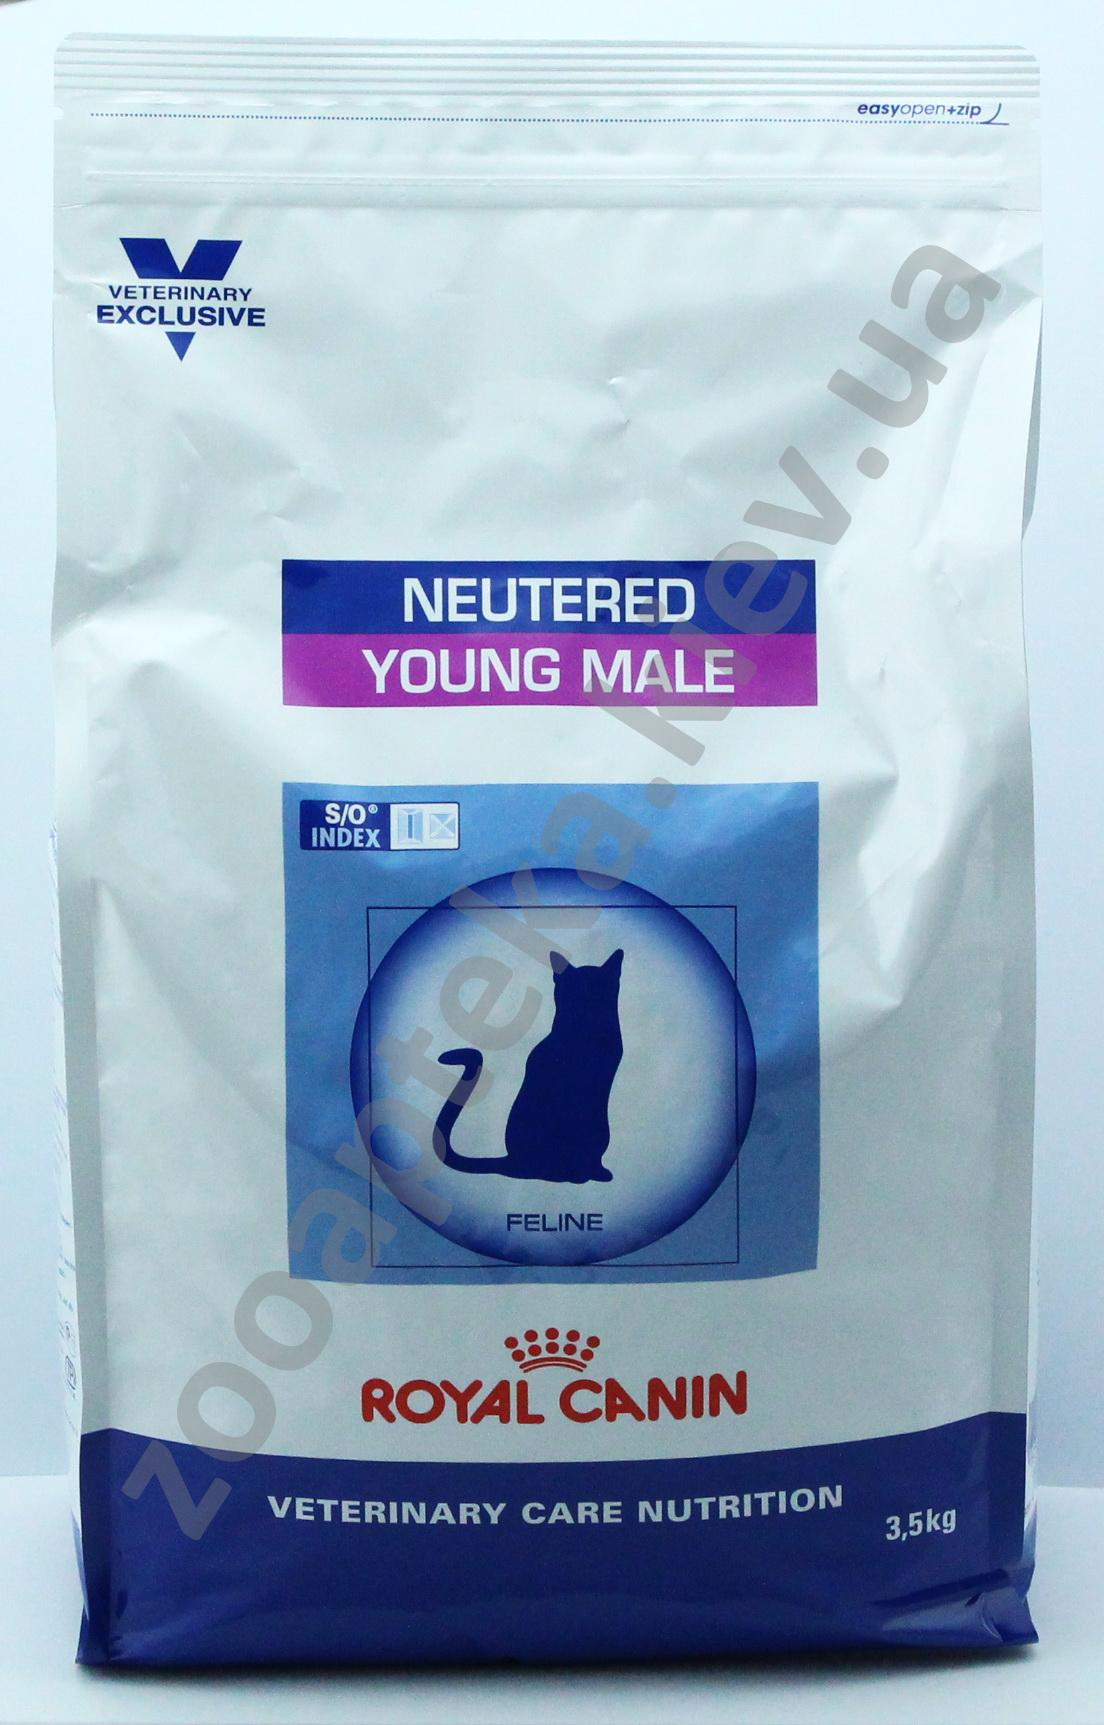 Royal canin купить